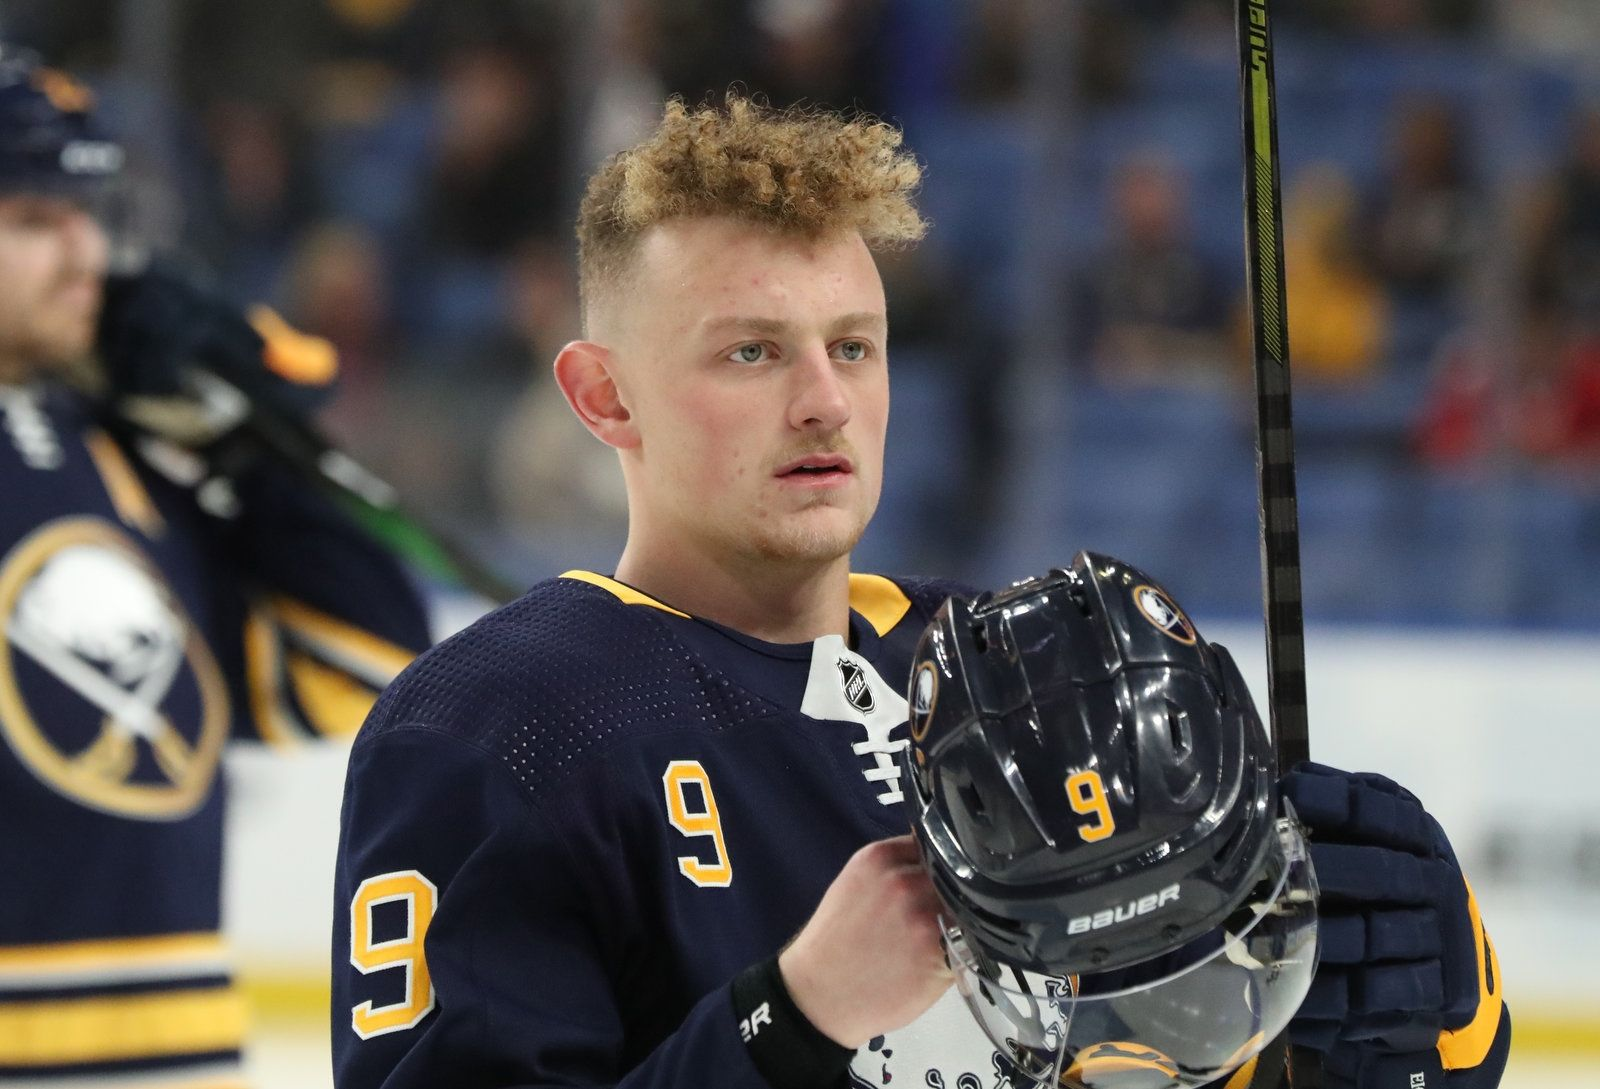 Buffalo Sabres center Jack Eichel (9) skates to the bench before the start of the game.